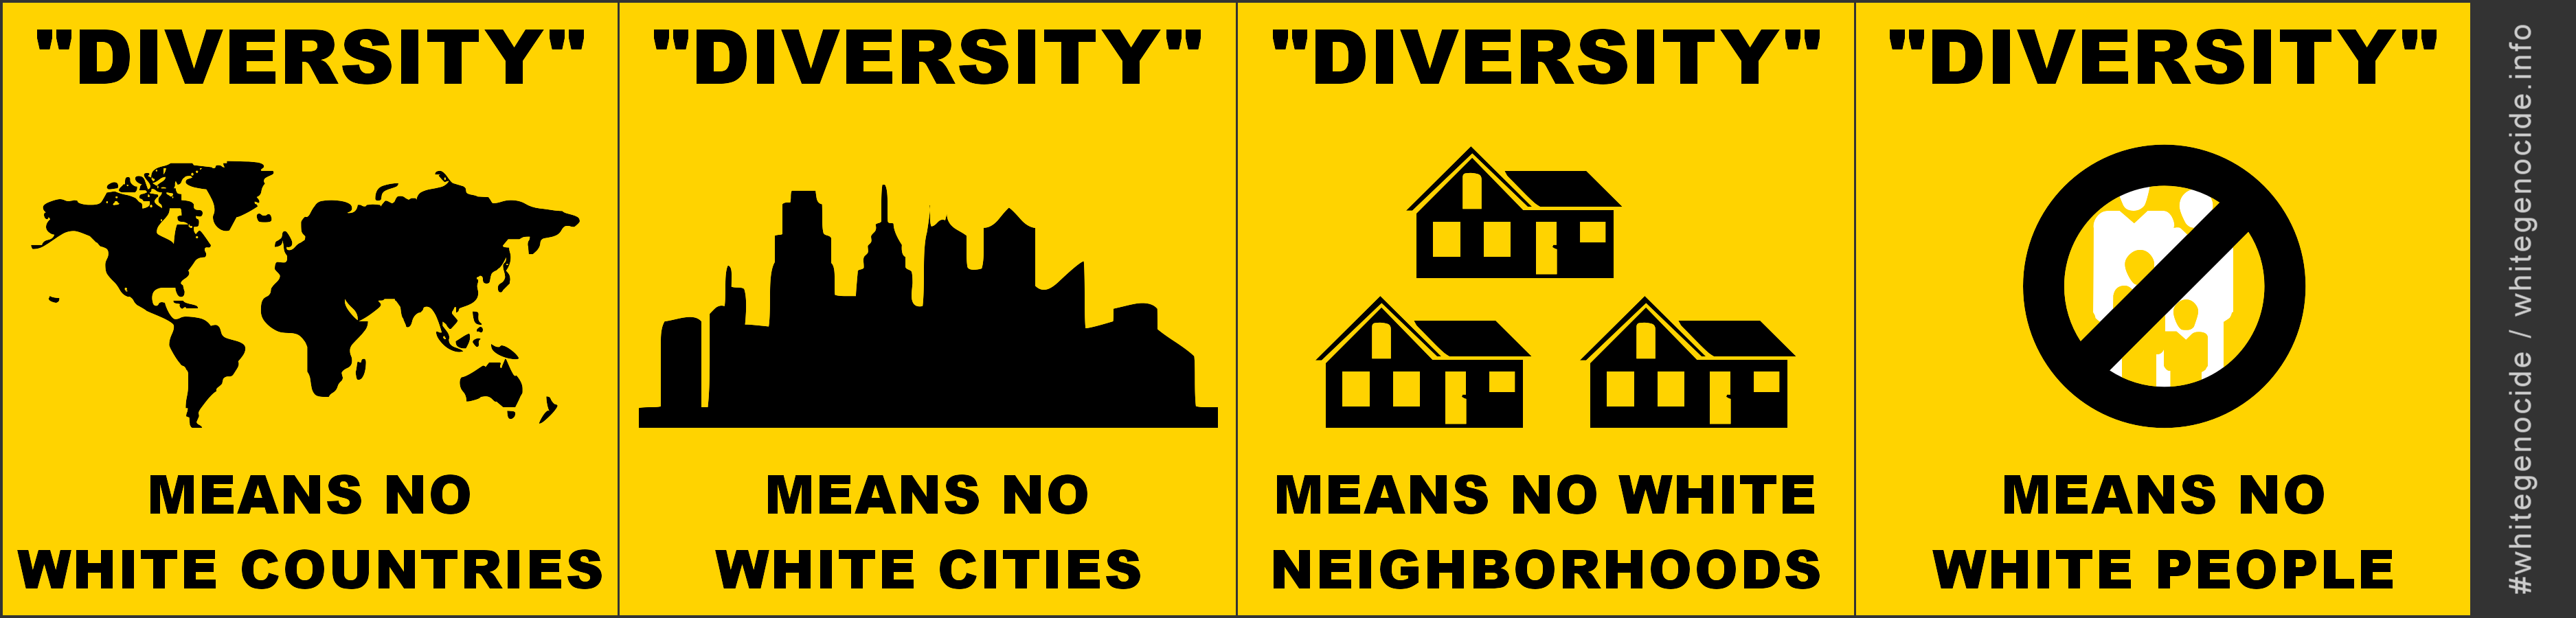 graphic - diversity means no white - single line